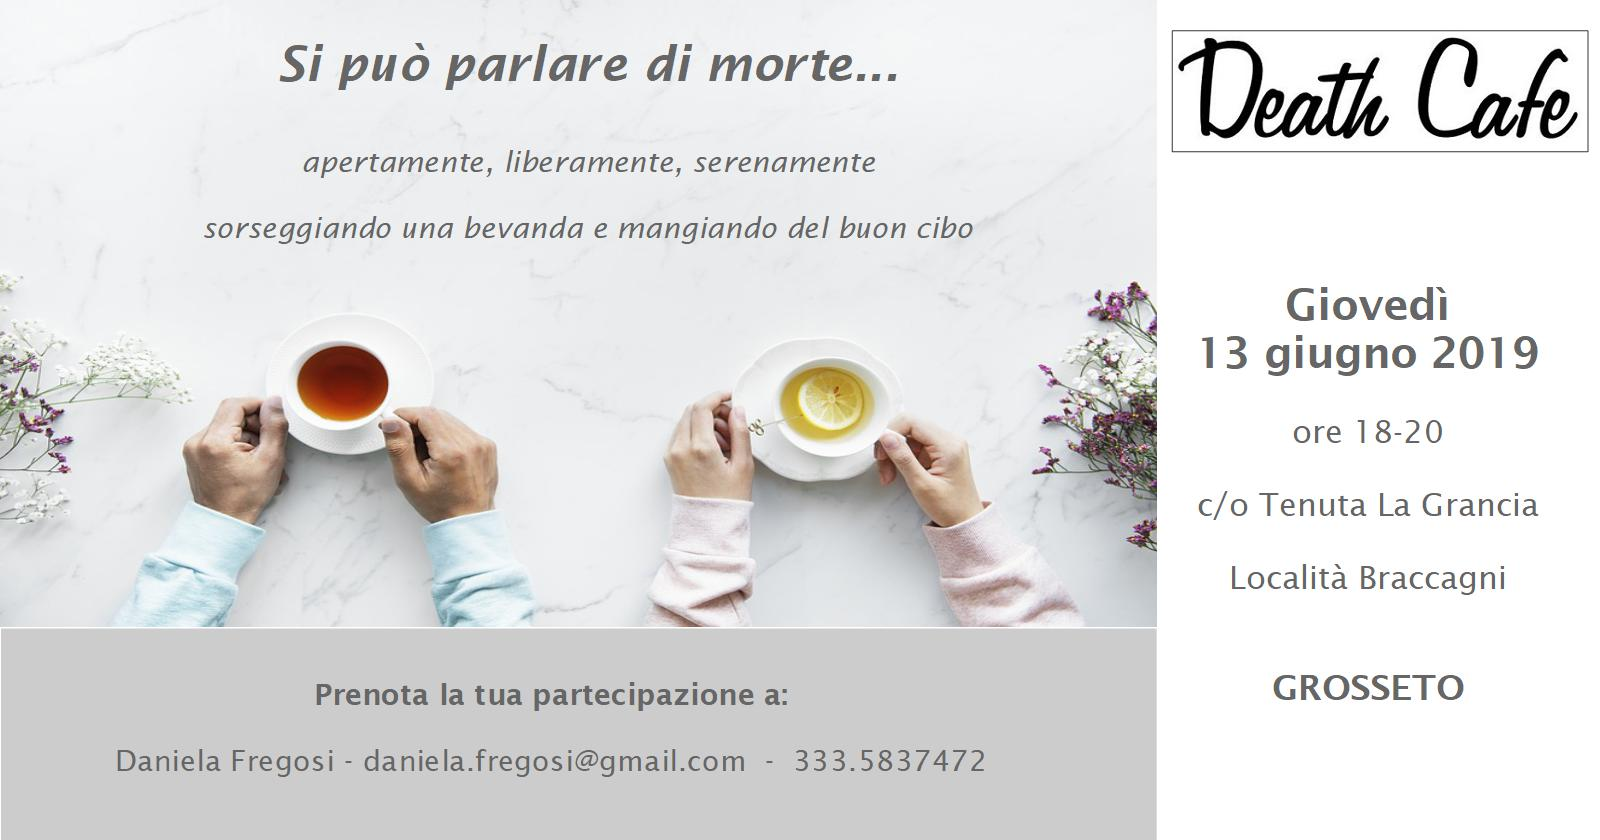 Death Cafe a Grosseto